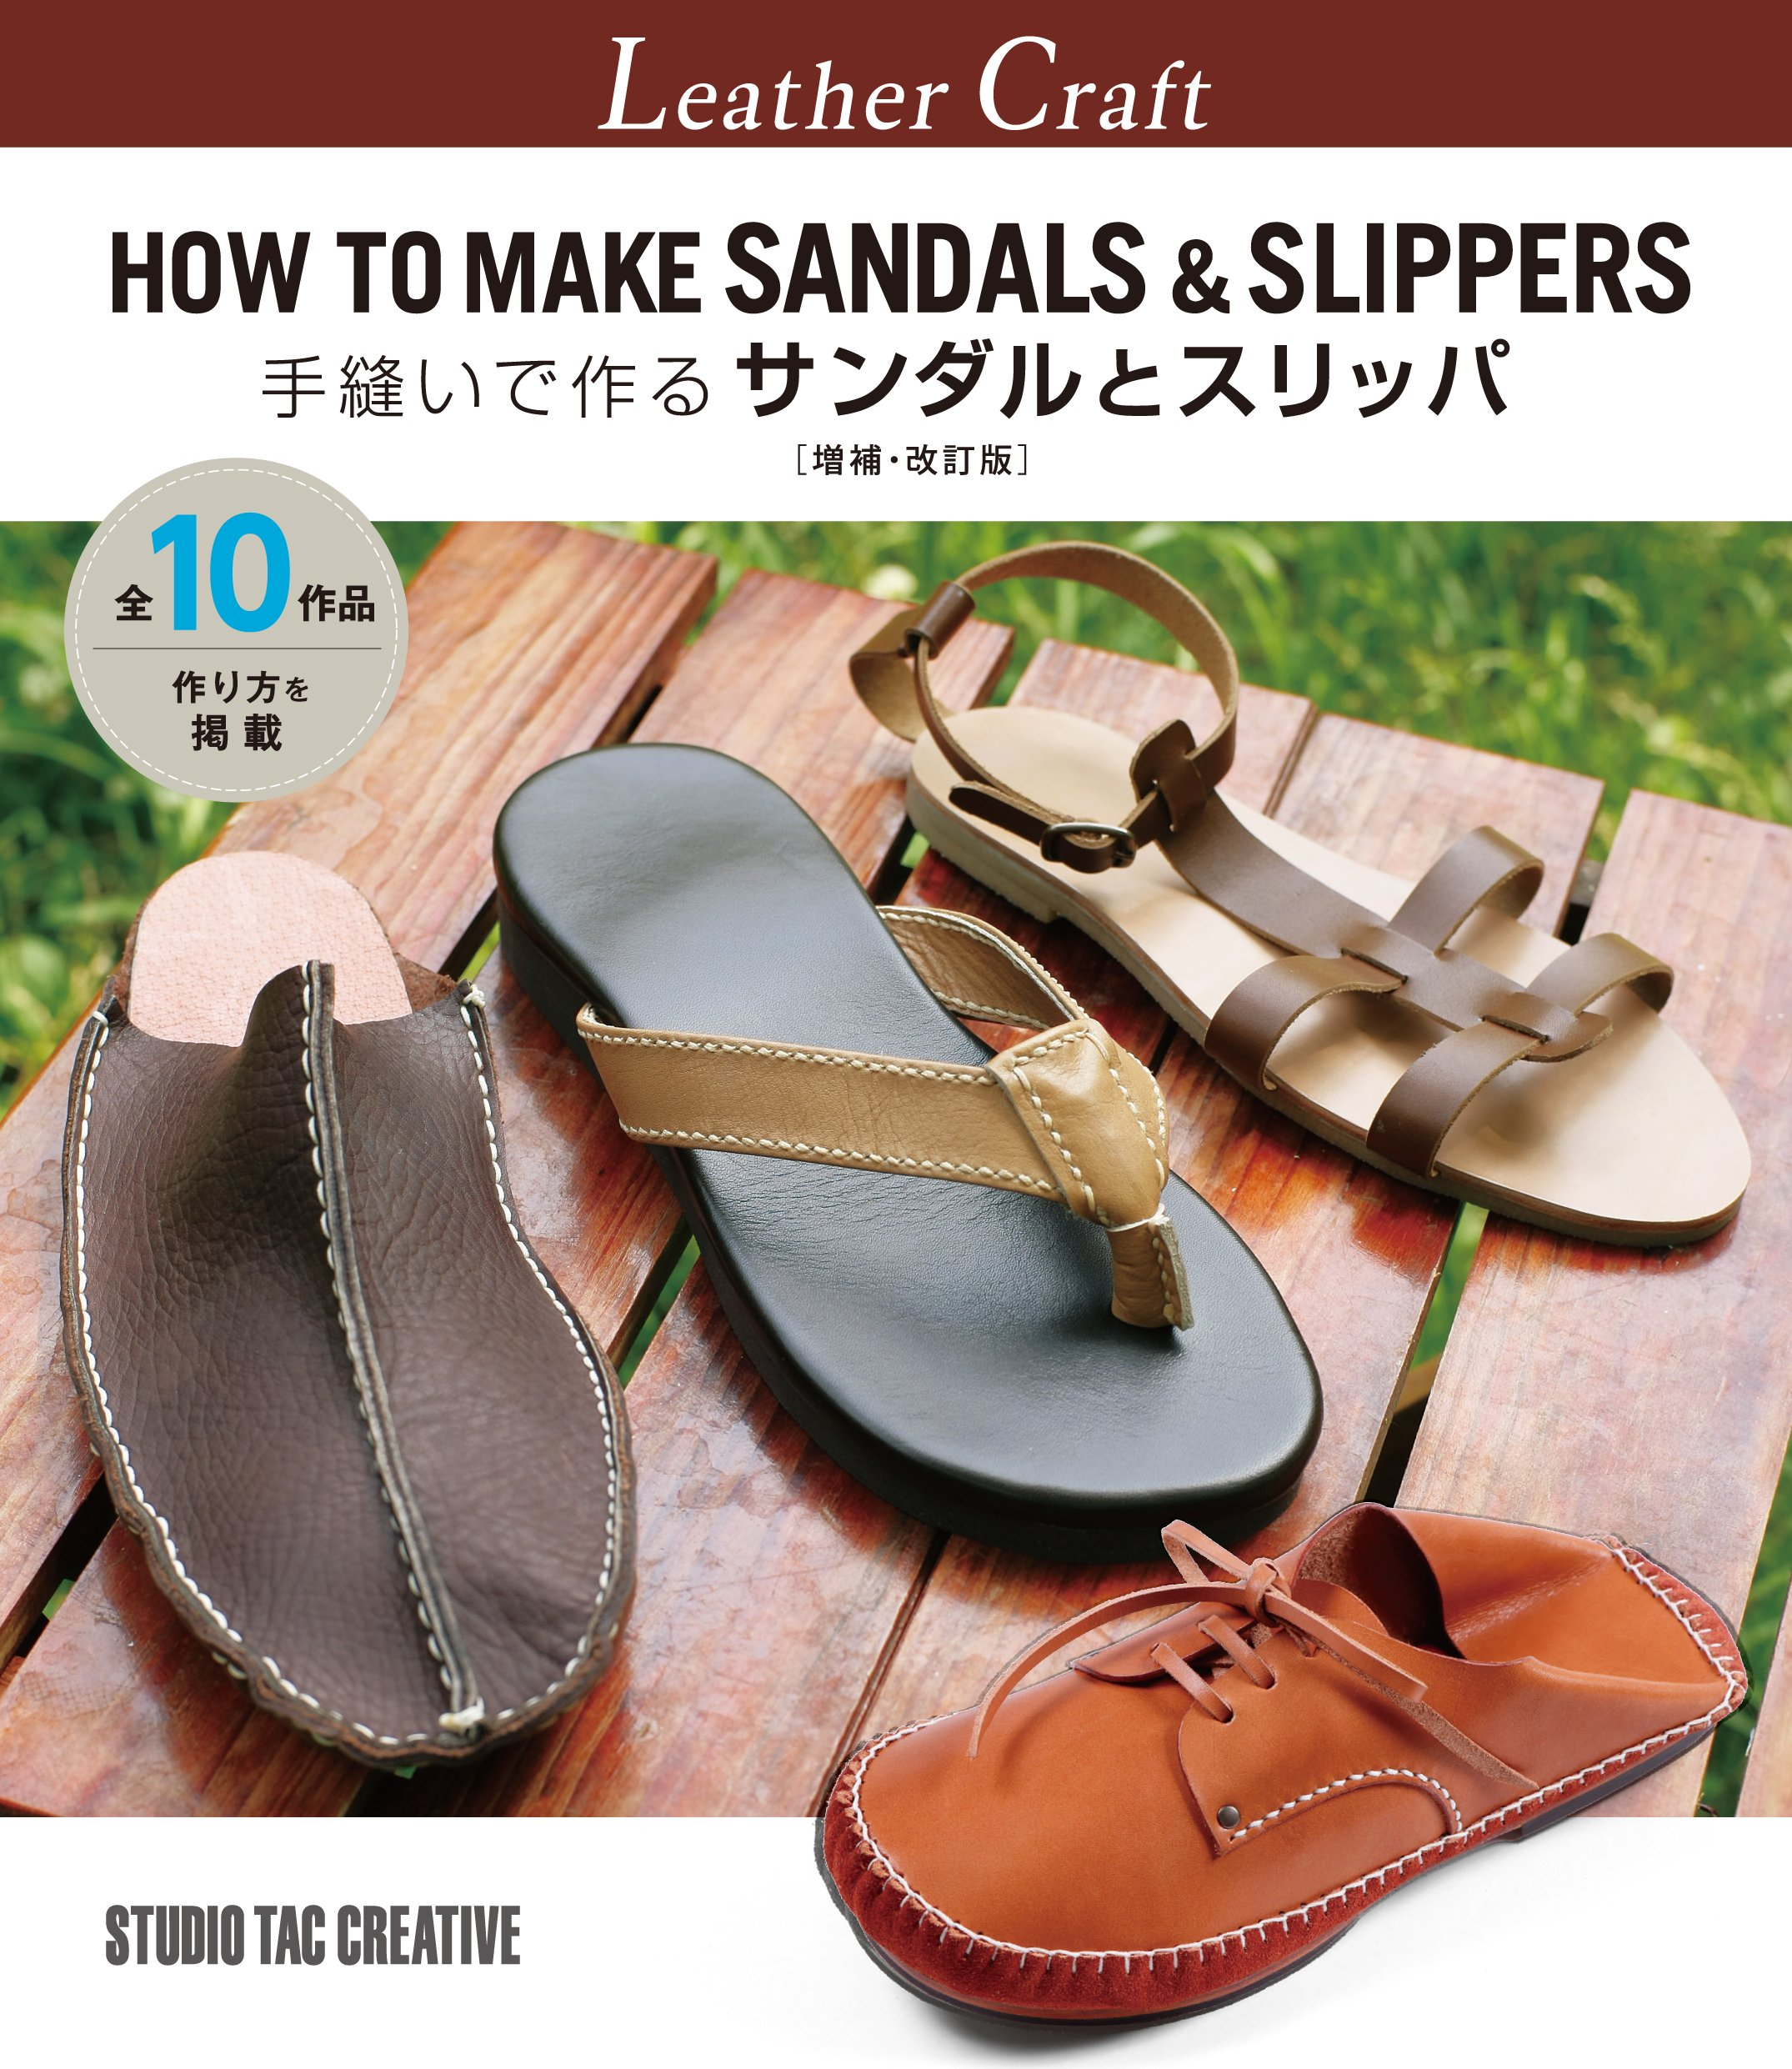 c12e22188 Hand Make Sandals And Slippers 増補 REV (Leather Craft) (Japanese) Paperback